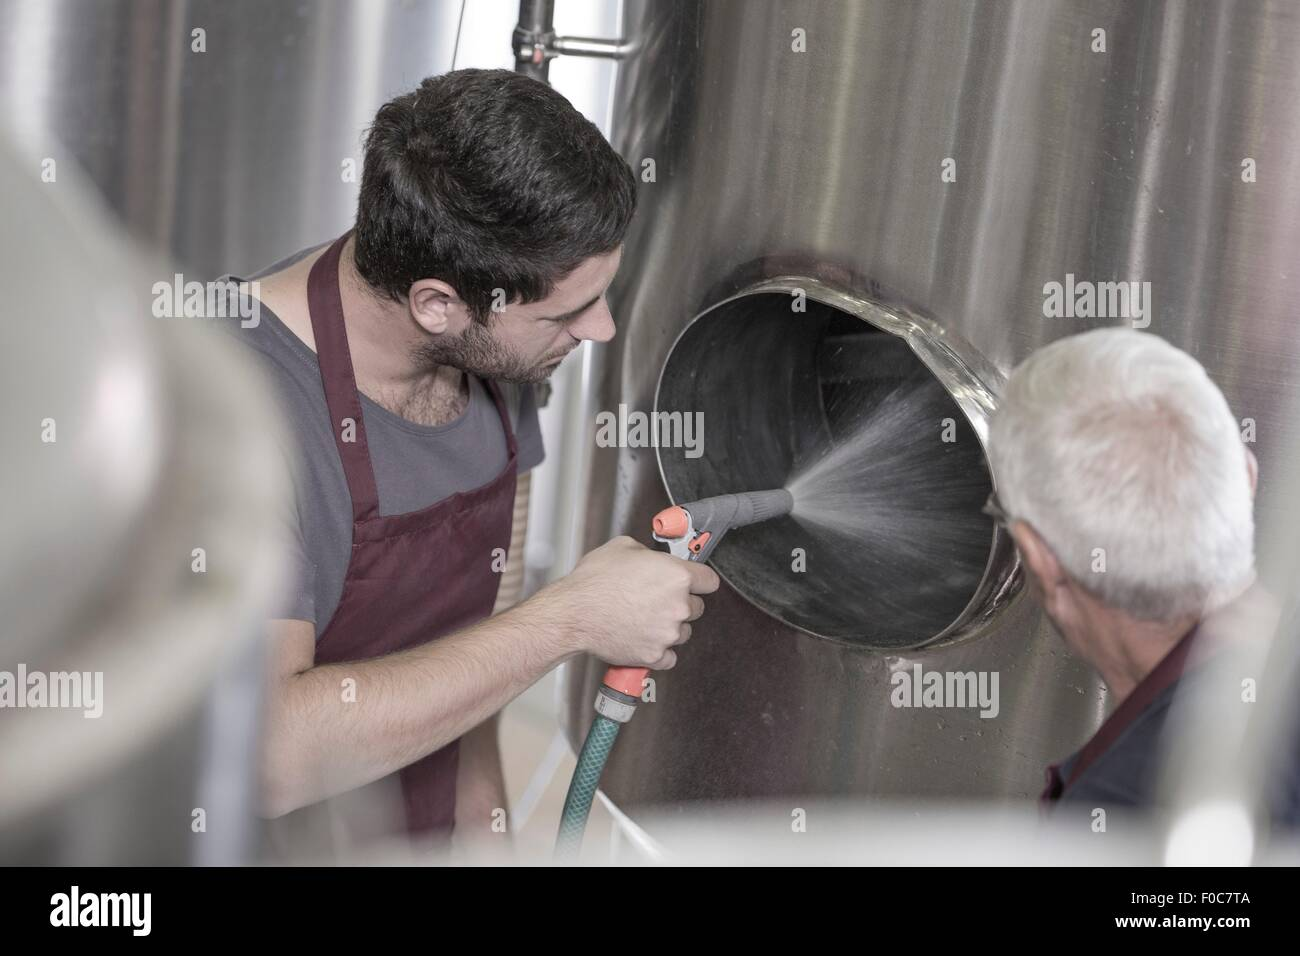 Brewer cleaning out a stainless steel tank in the brewery - Stock Image